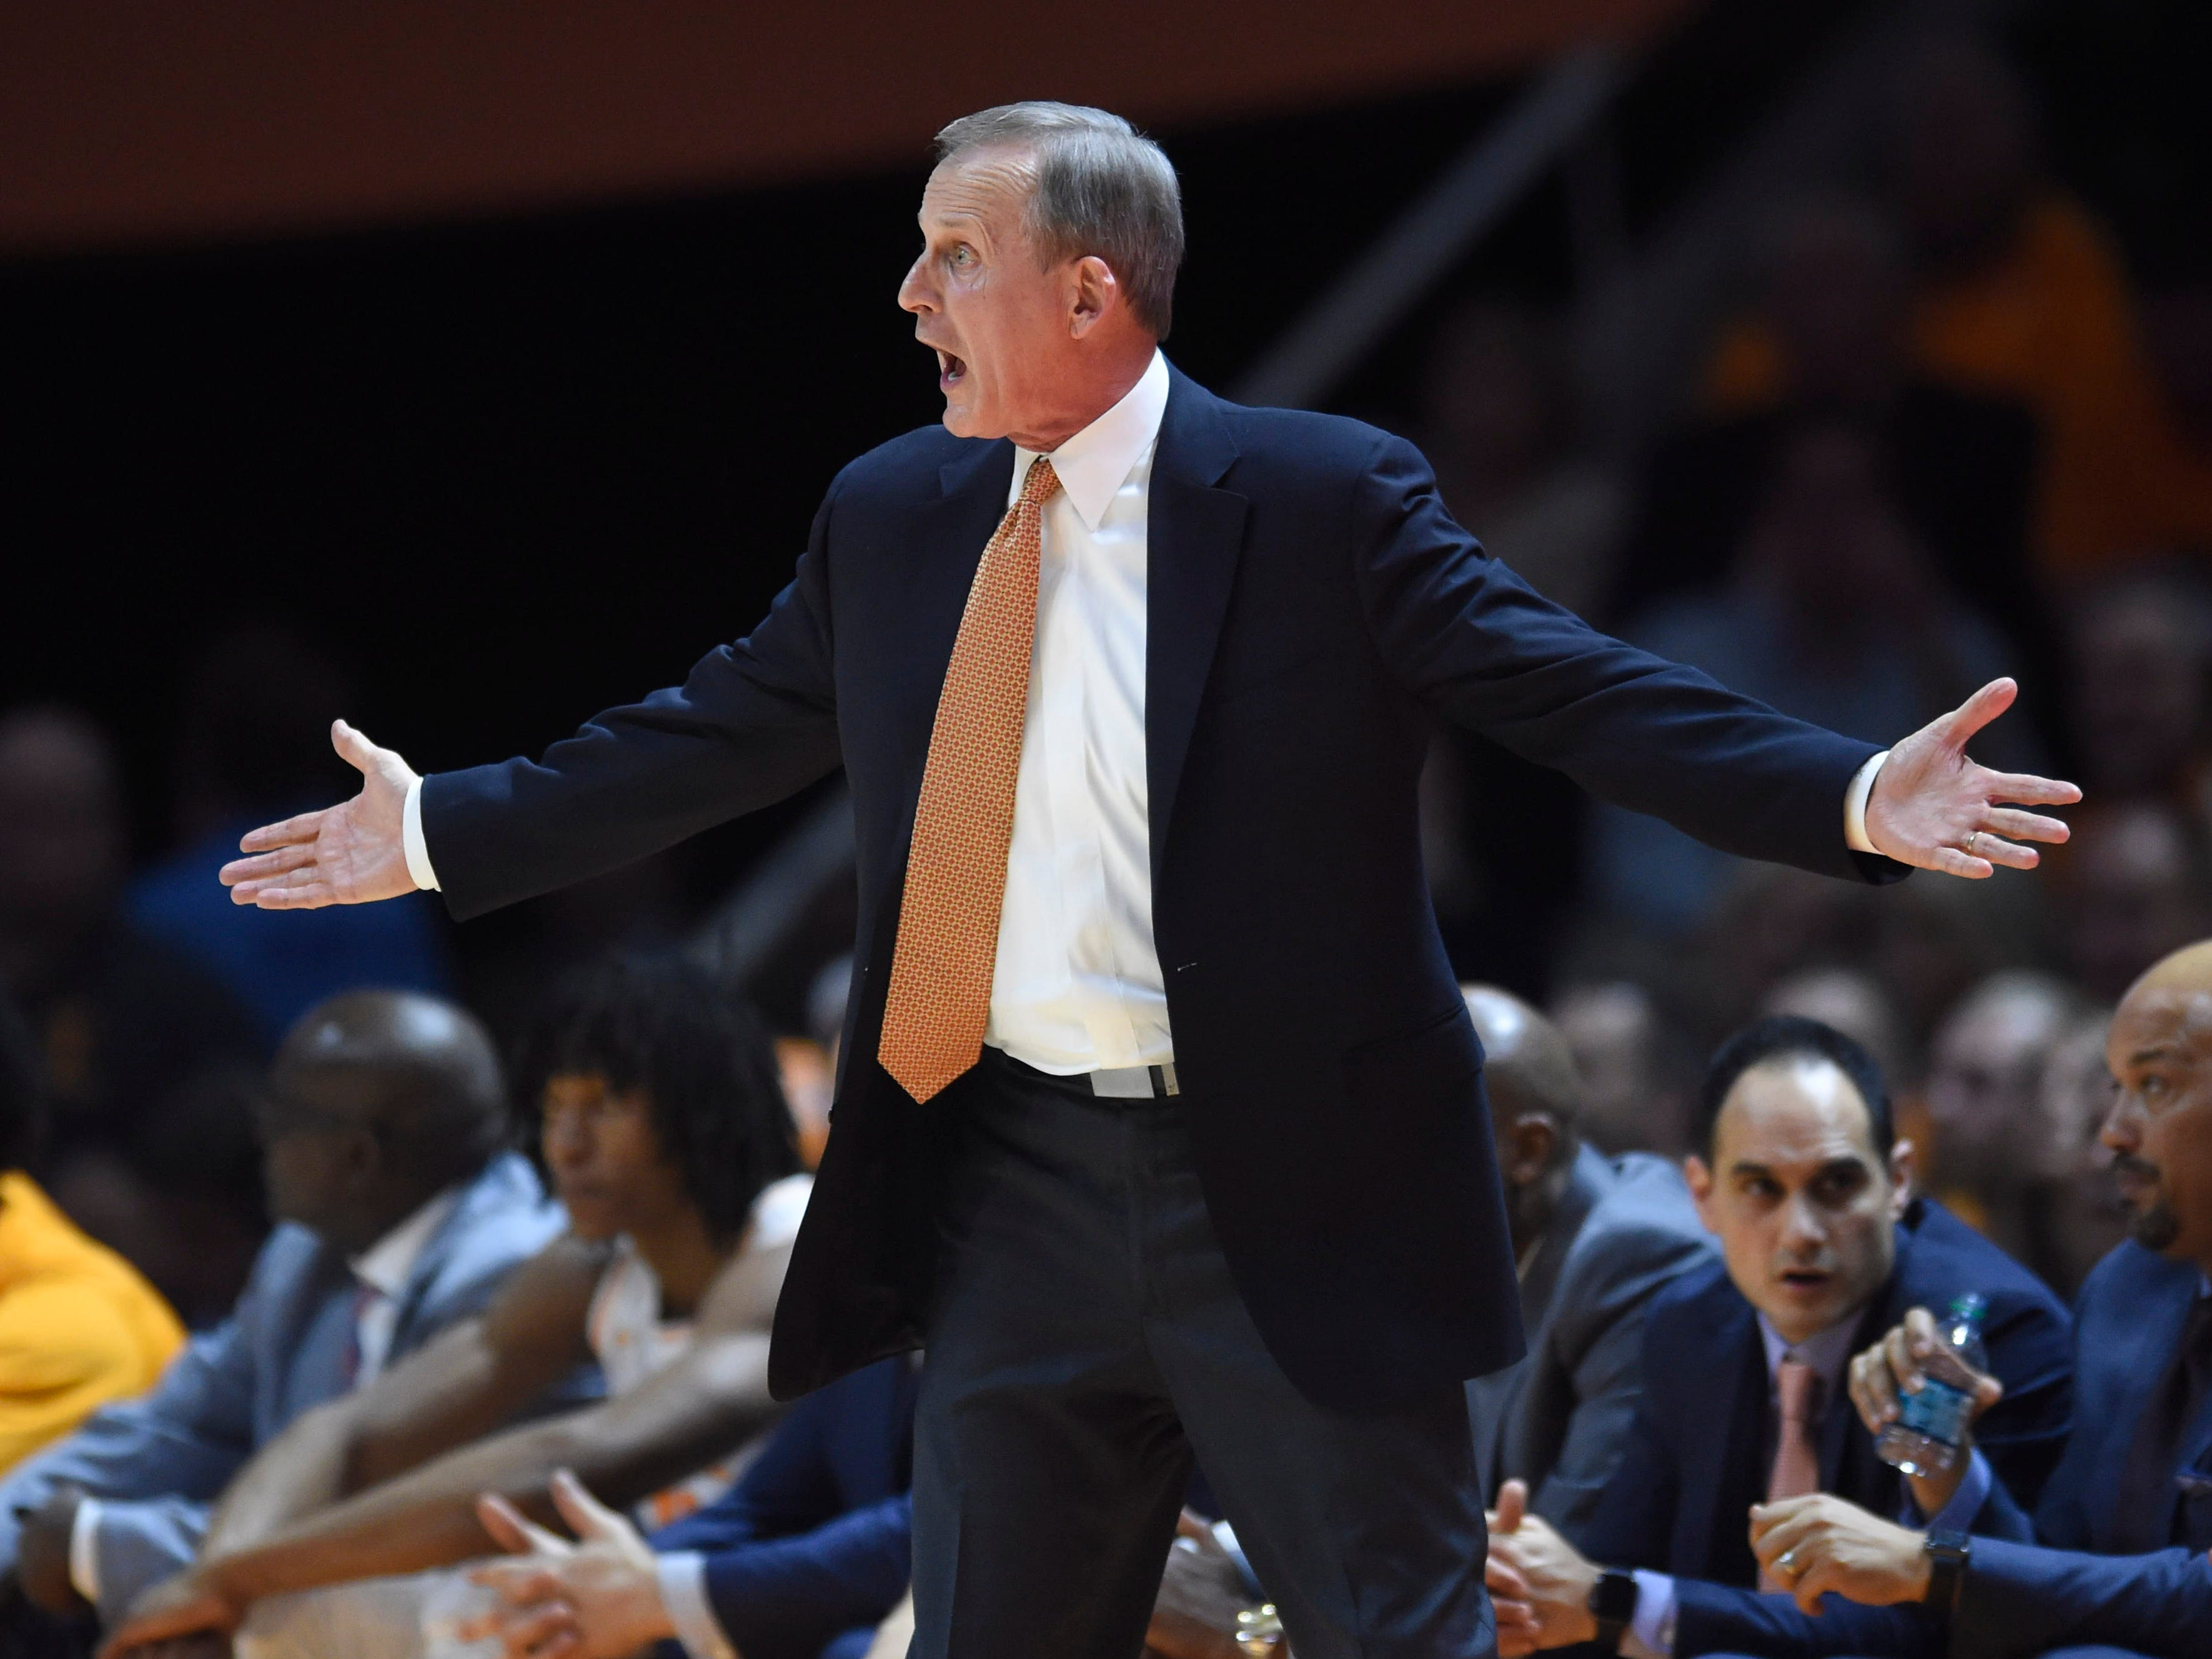 Tennessee basketball coach Rick Barnes shows his displeasure over a foul call on Grant Williams in the game against Missouri on Tuesday, February 5, 2019.